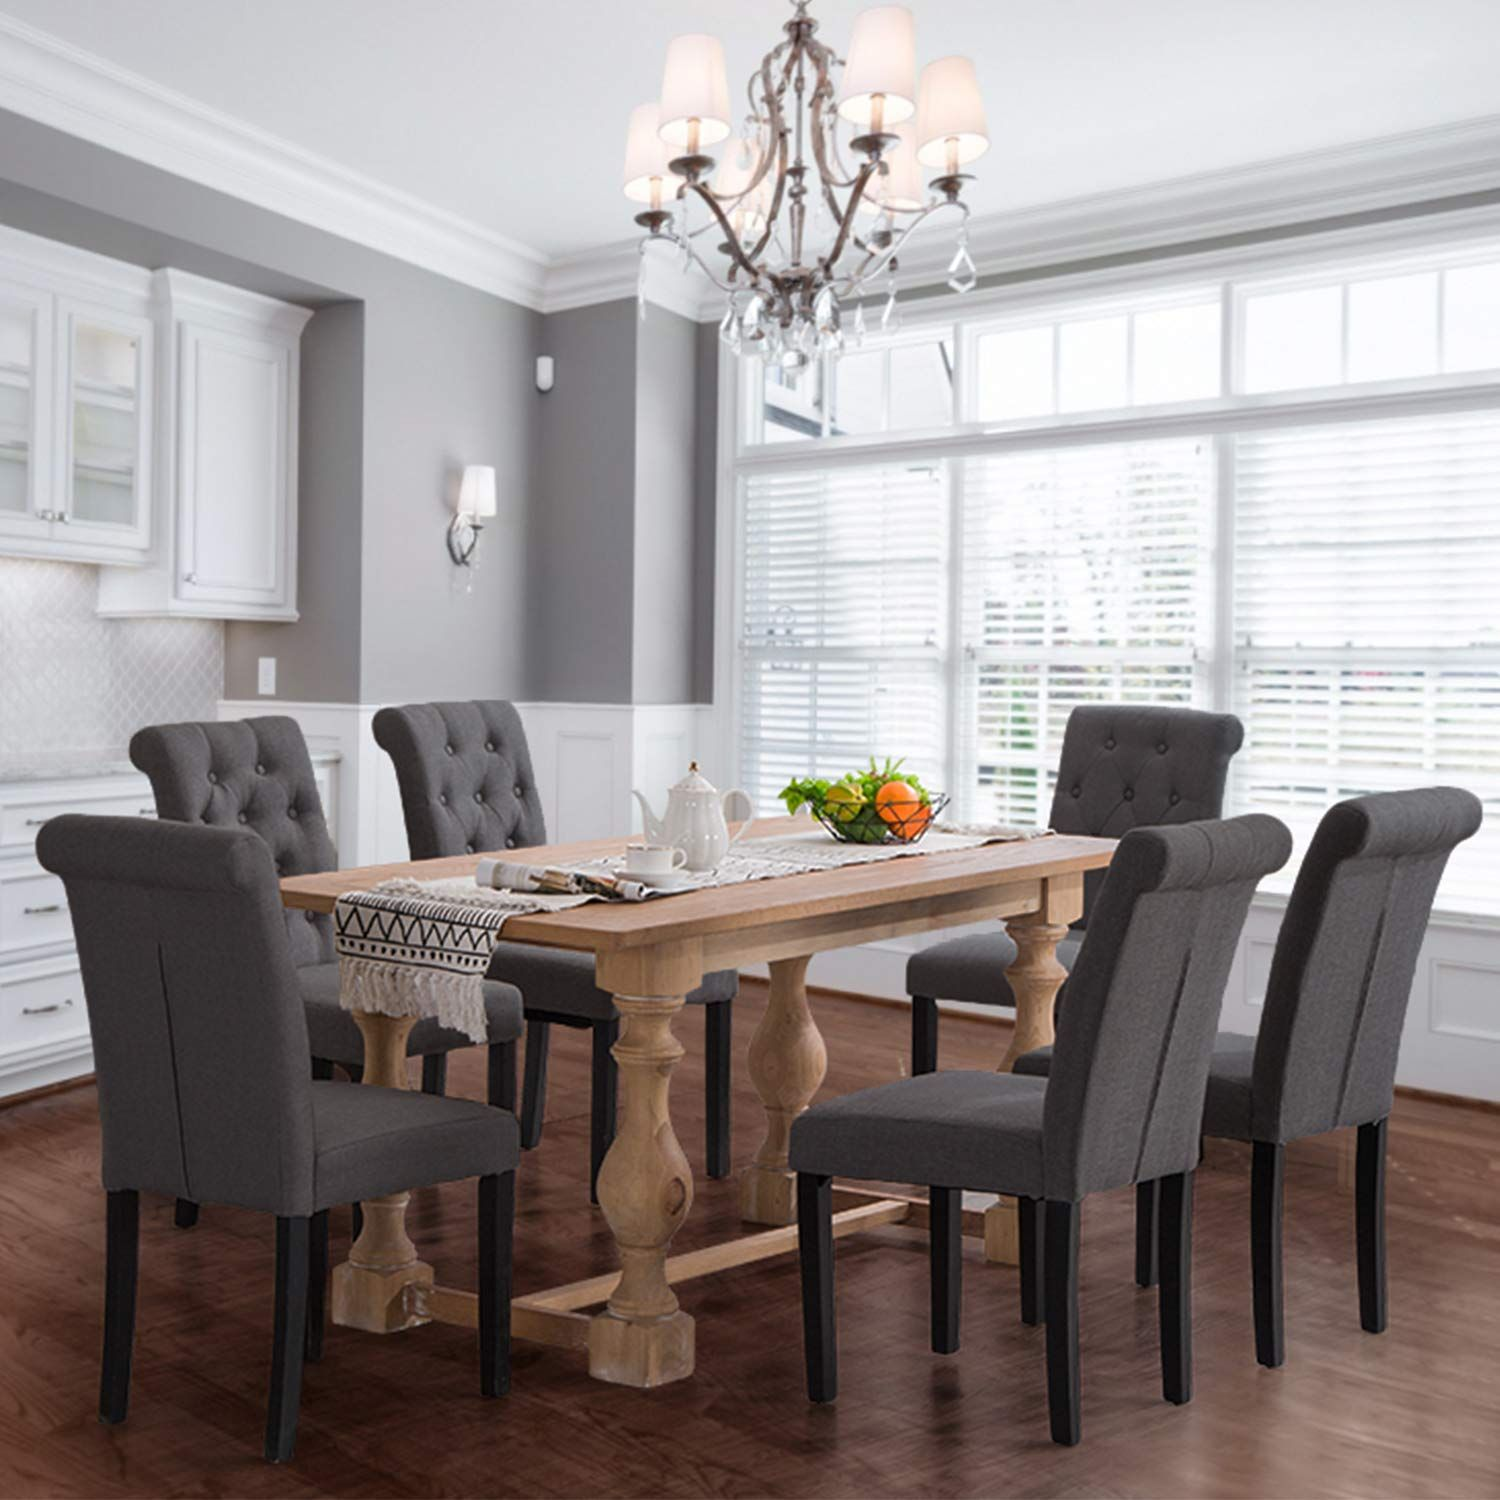 25 Elegant And Exquisite Gray Dining Room Ideas: Homy Grigio Aristocratic Style Dining Chair Noble And